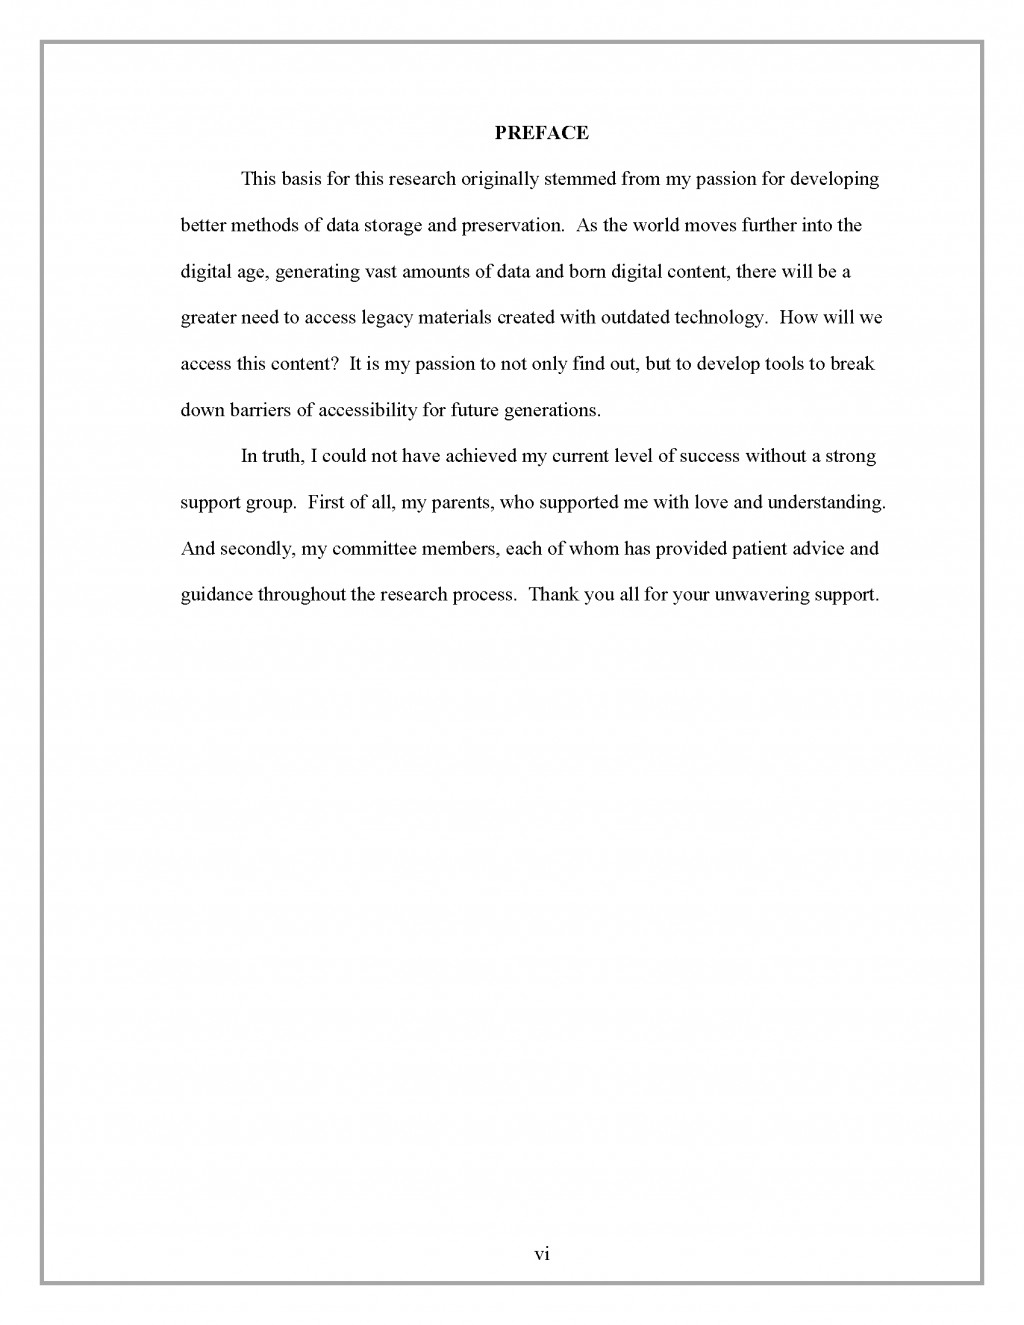 011 Research Paper Preface Border How To Write Thesis For Fantastic A History Large